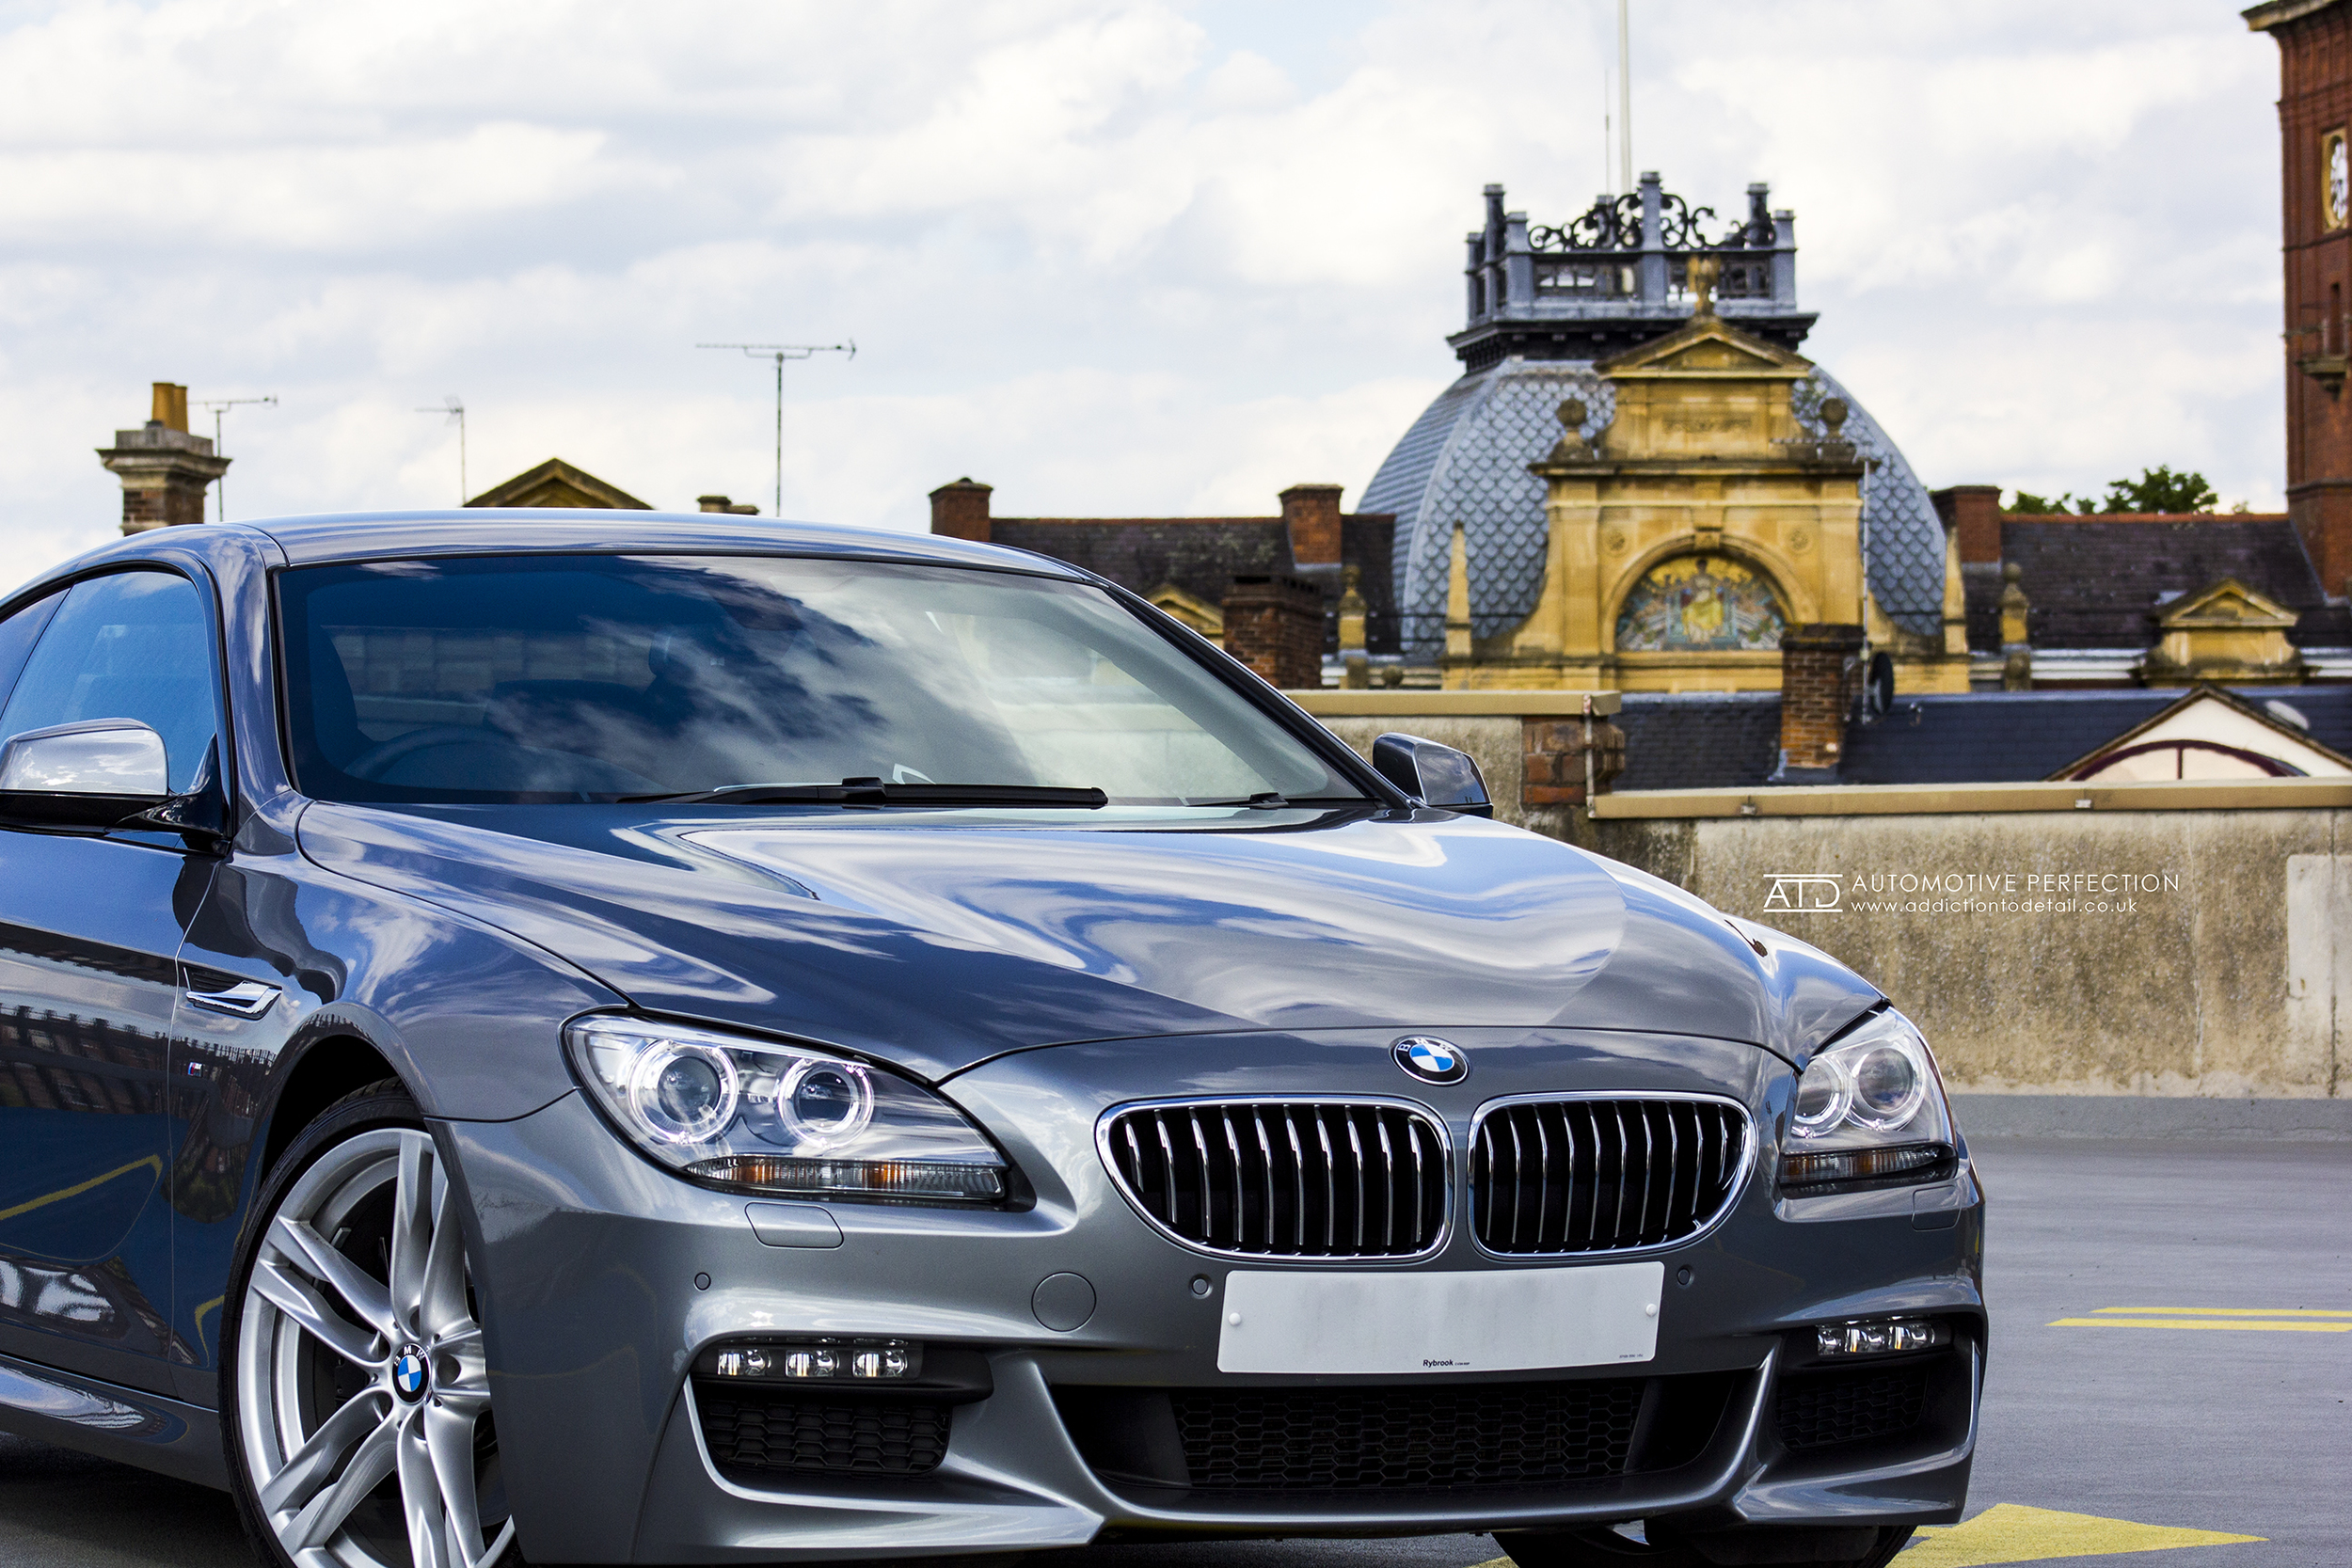 640D_Coupe_Photoshoot__0017_Image_017.jpg